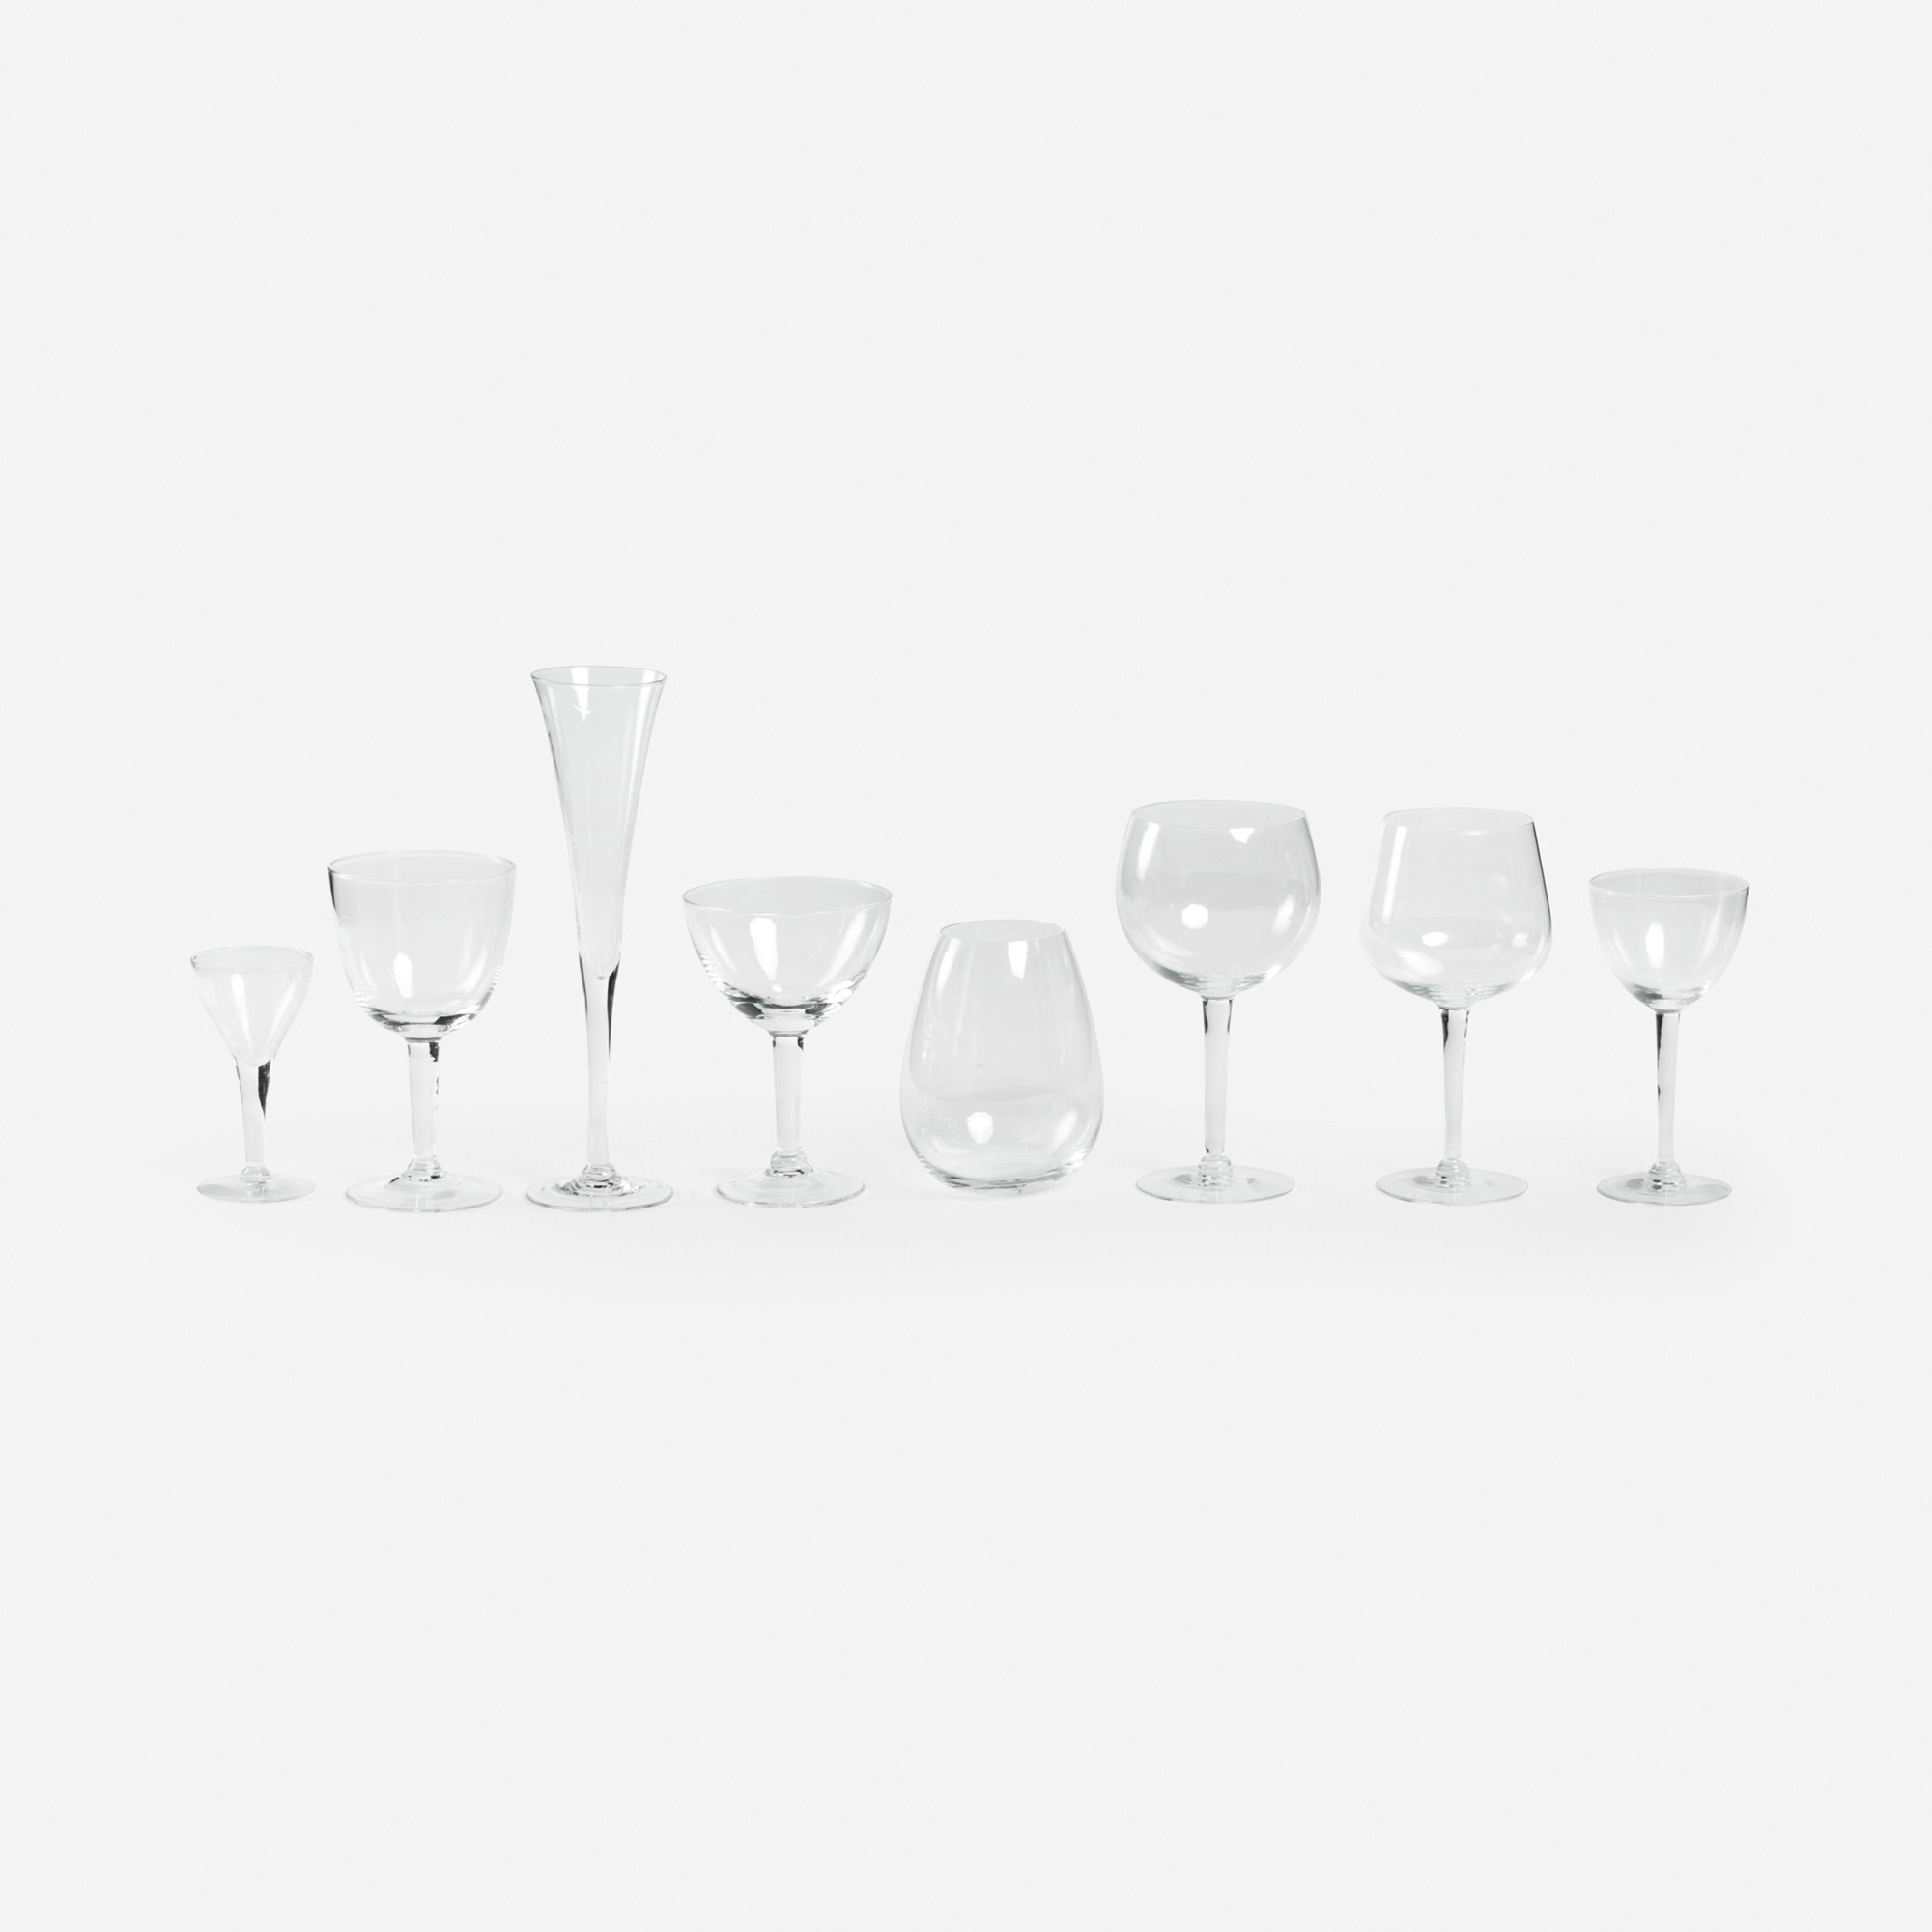 614: Garth and Ada Louise Huxtable / Stemware Collection from The Four Seasons, service for four (1 of 1)